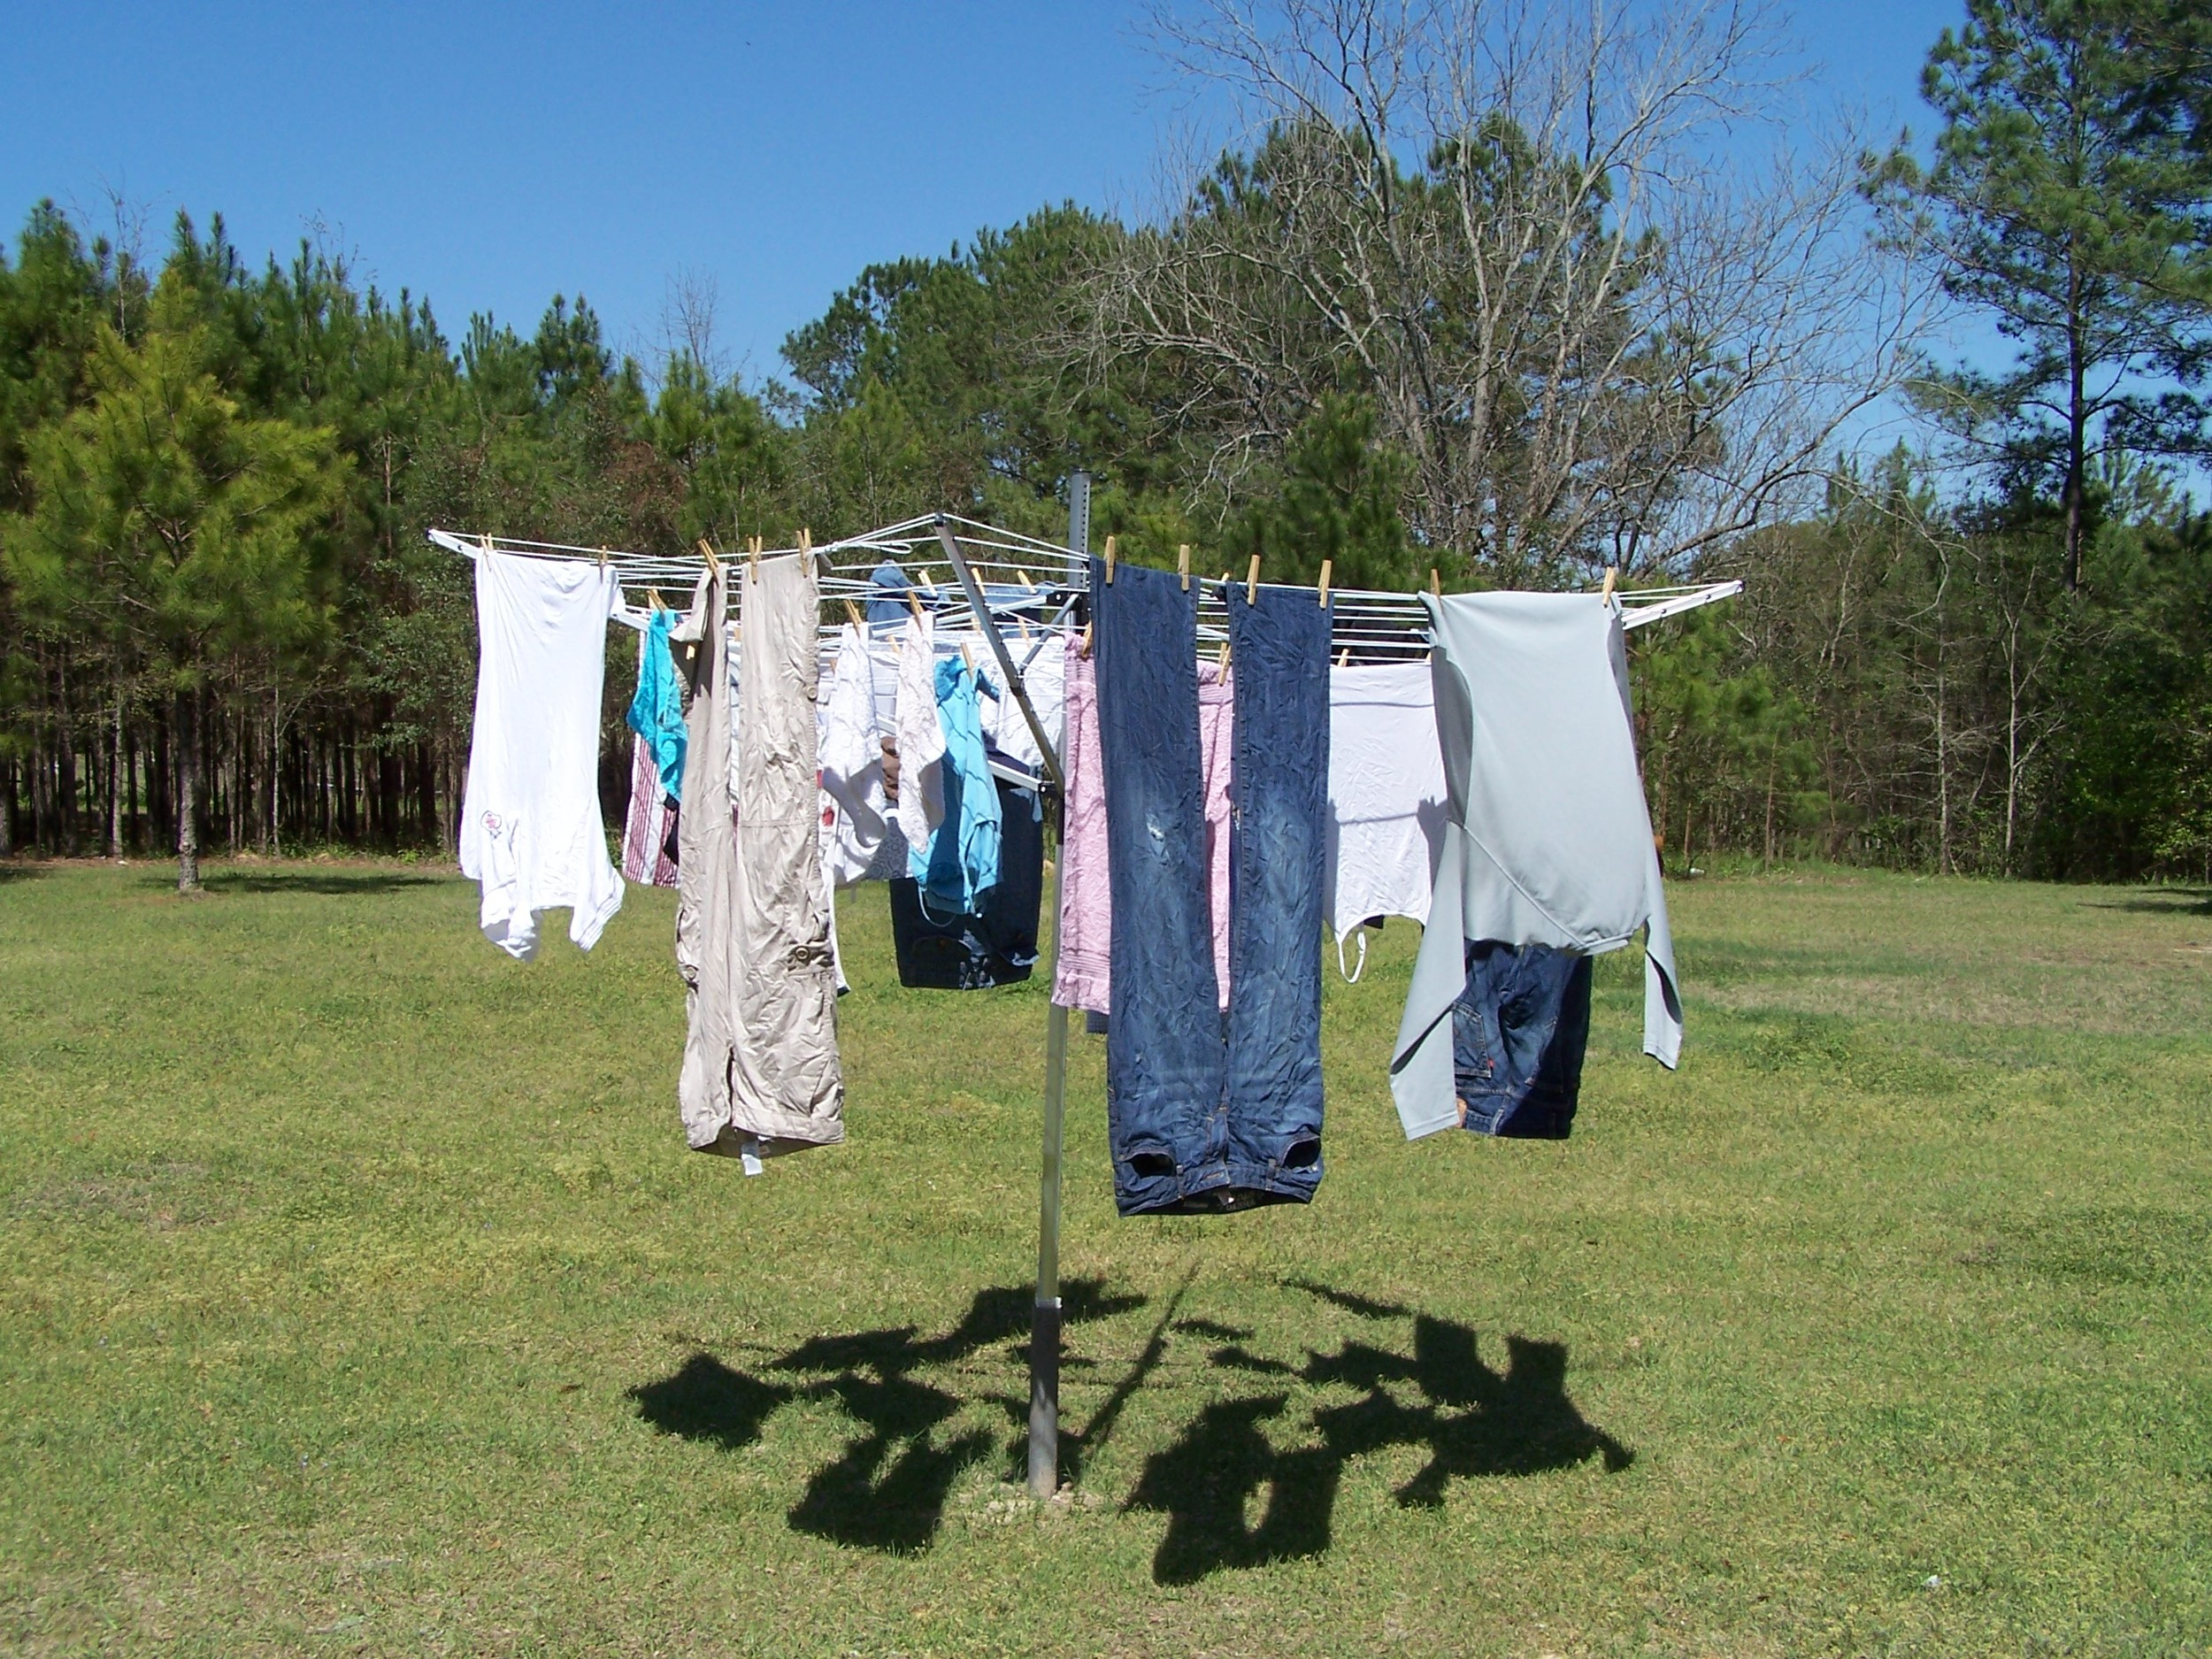 Most houses in Australia have a clothes line in the backyard. Australians take advantage of the good weather and hang their clothes out to dry.